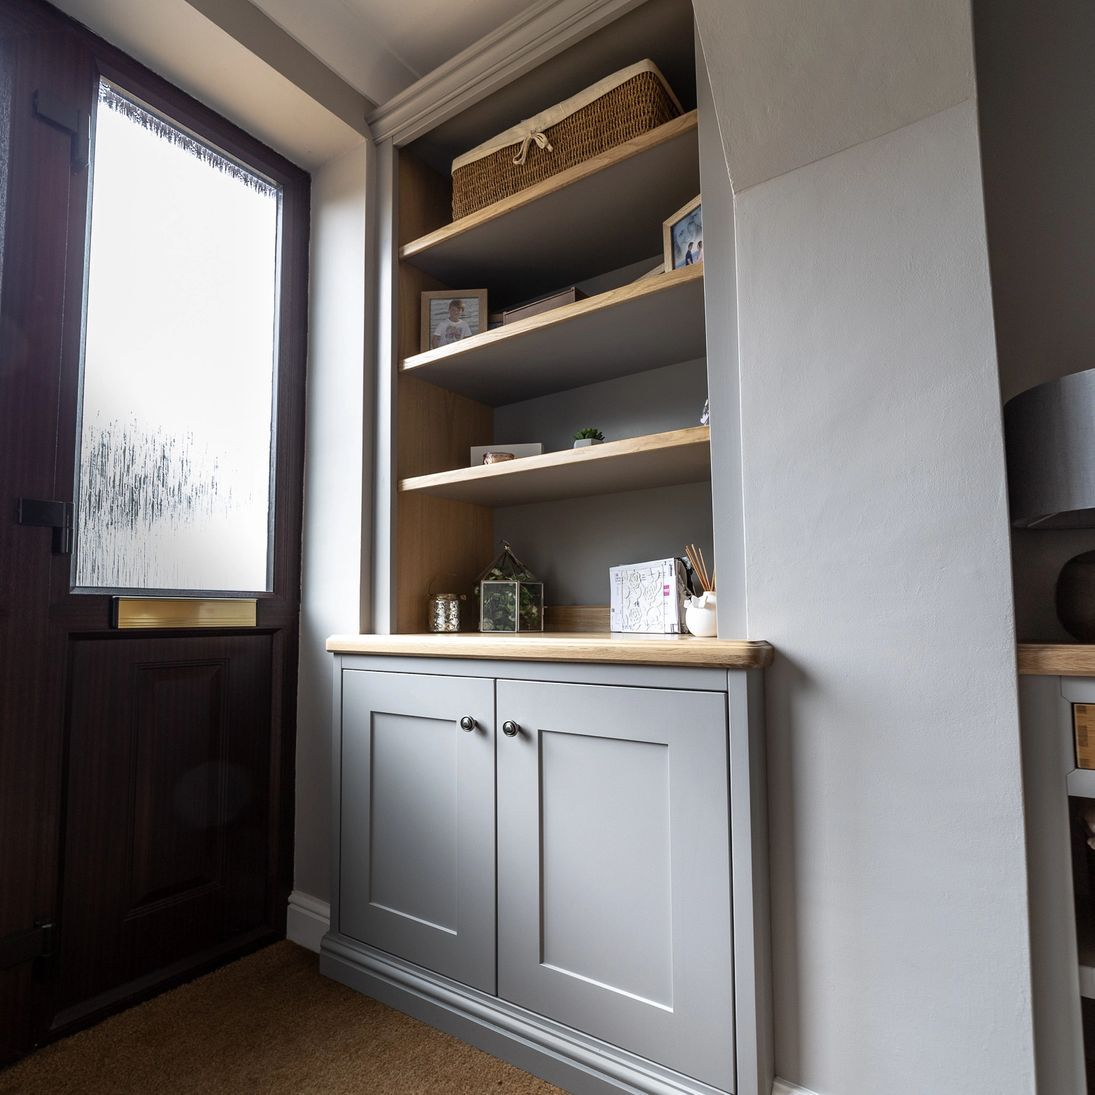 TW Bespoke Fitted Furniture, Fitted Wardrobes, Carpentry